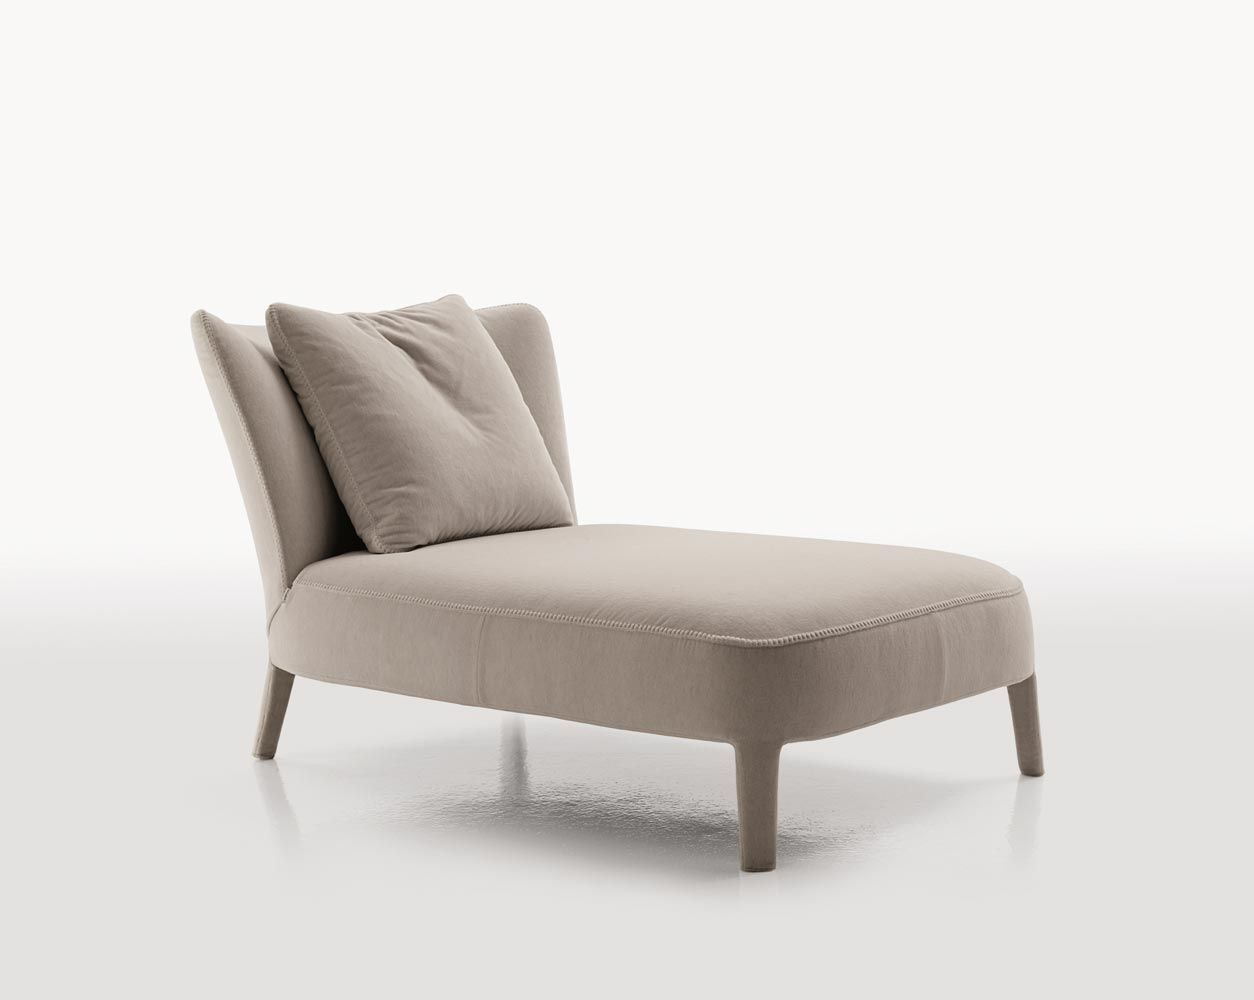 Contemporary lounge chair by Antonio Citterio - FEBO - MAXALTO